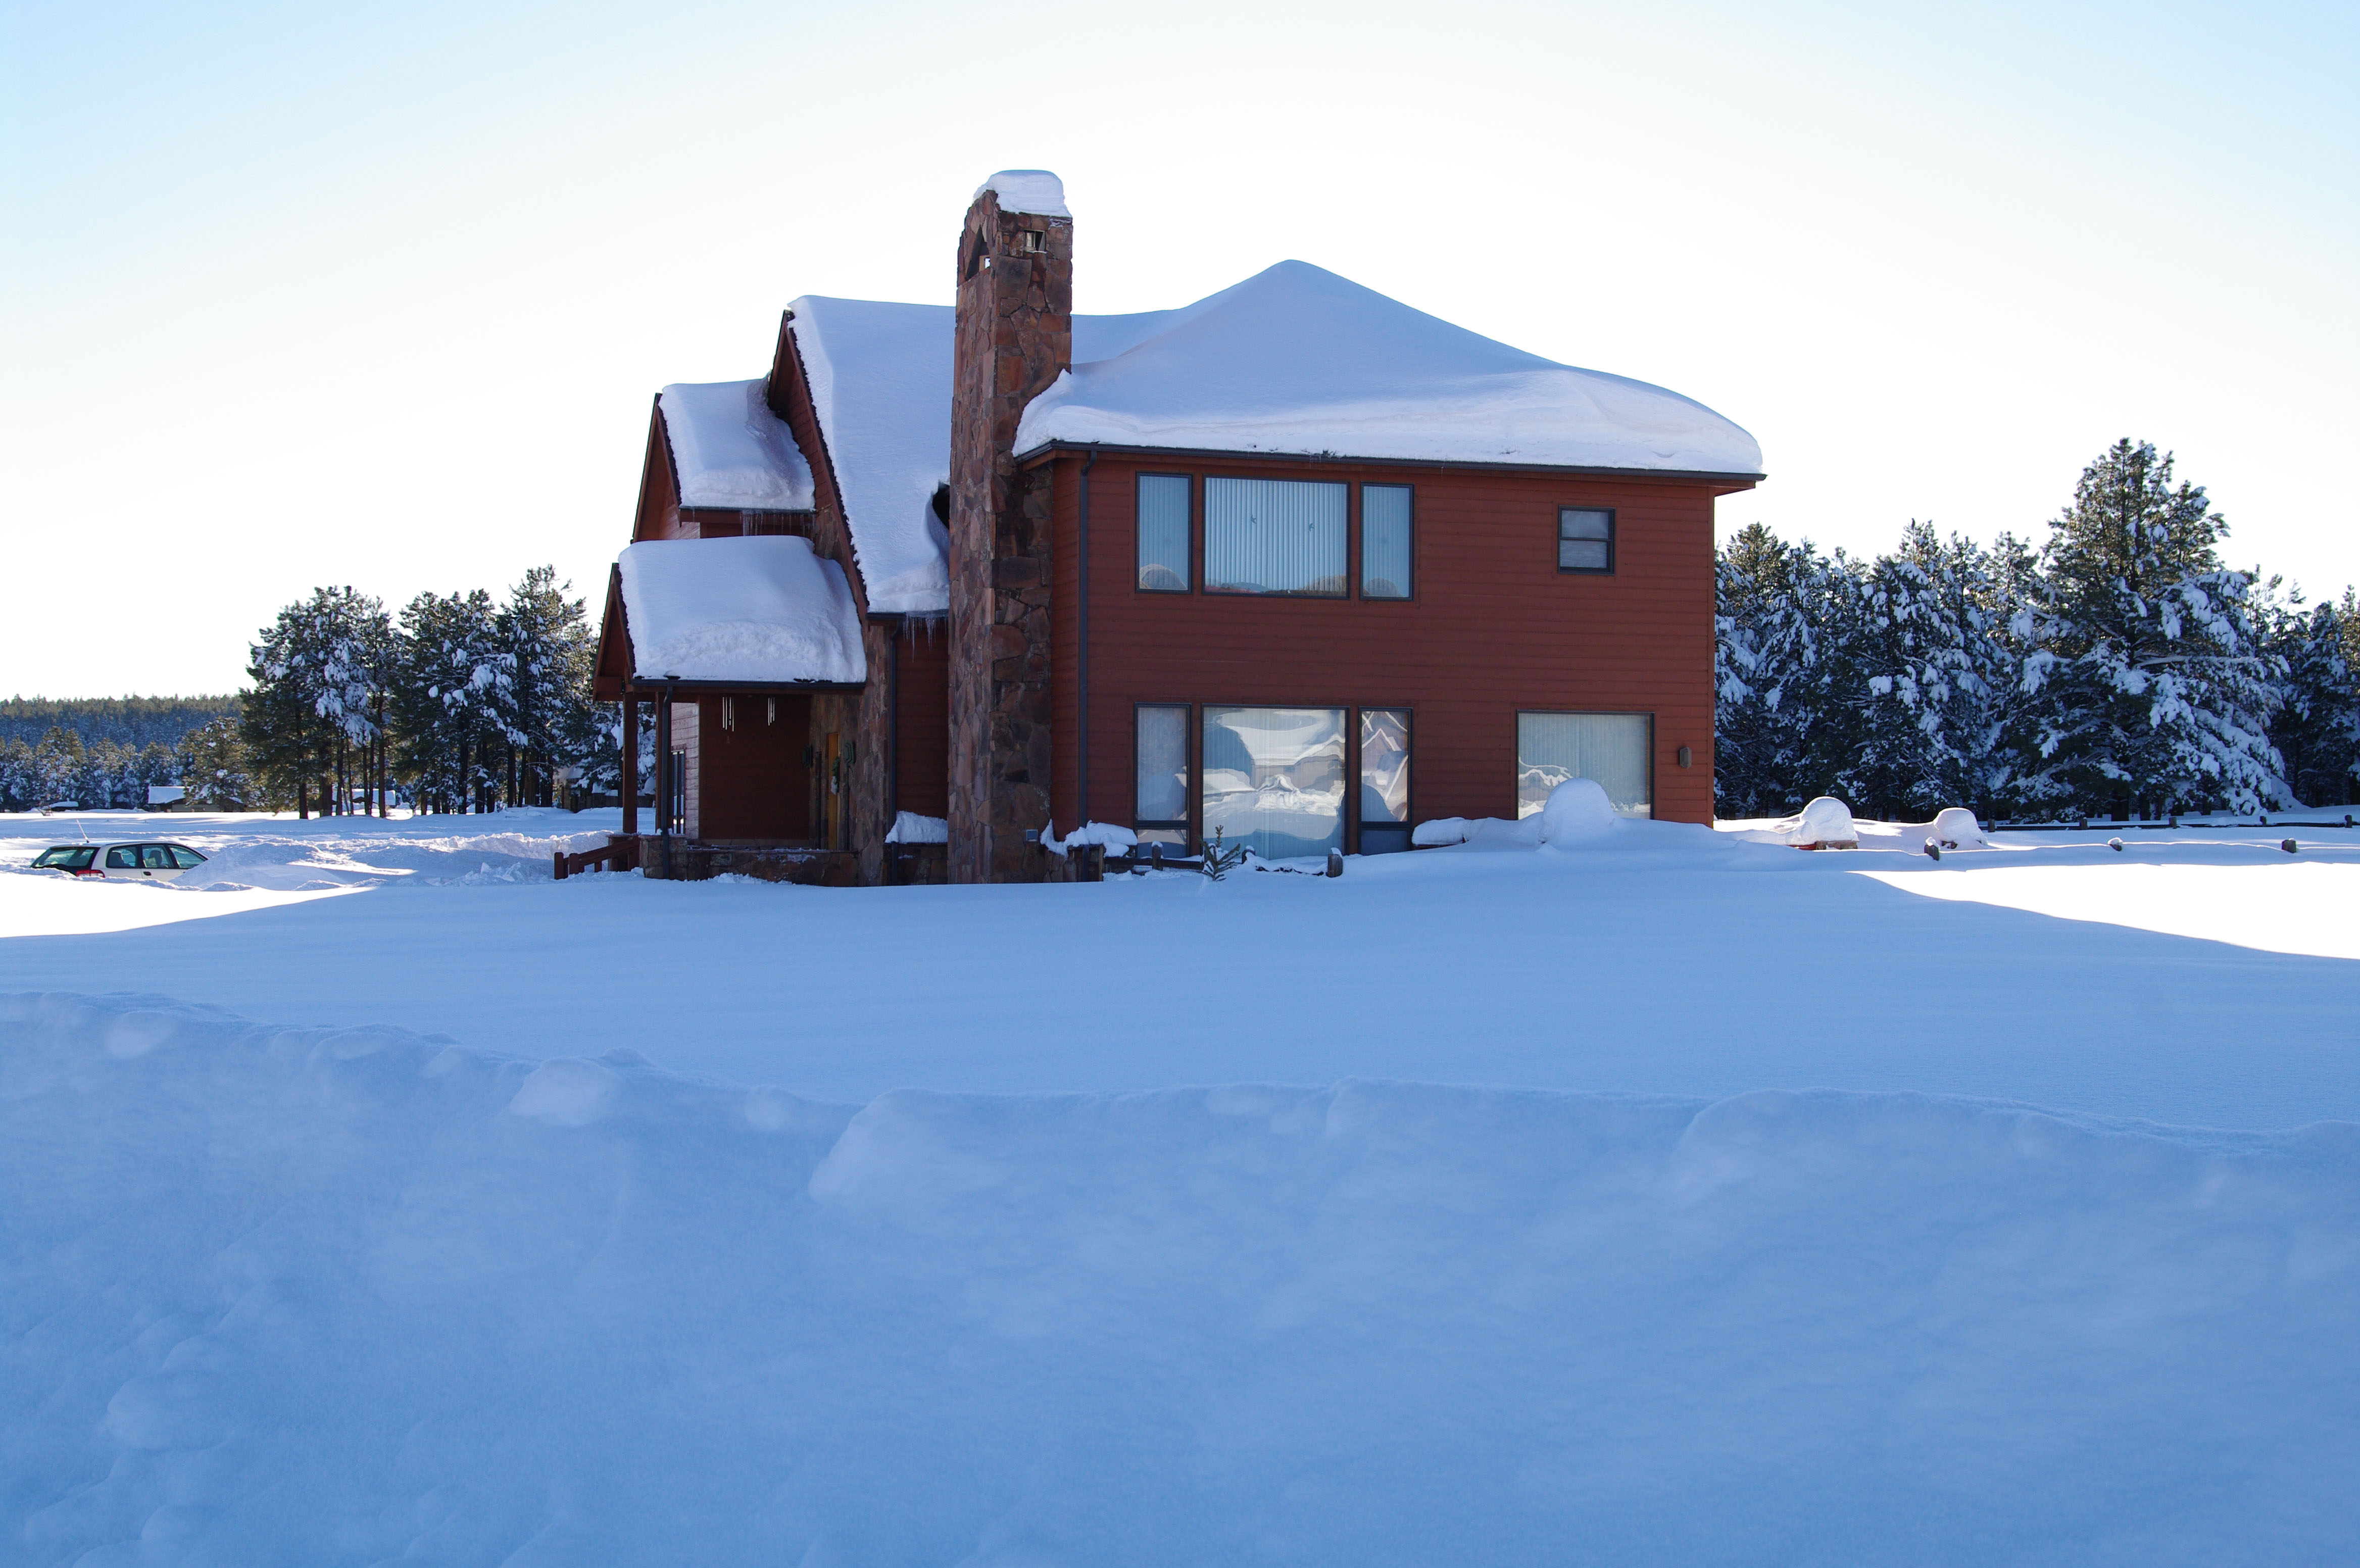 K20D4598.jpg - The other side of the house, with big snow drifts on the roof.